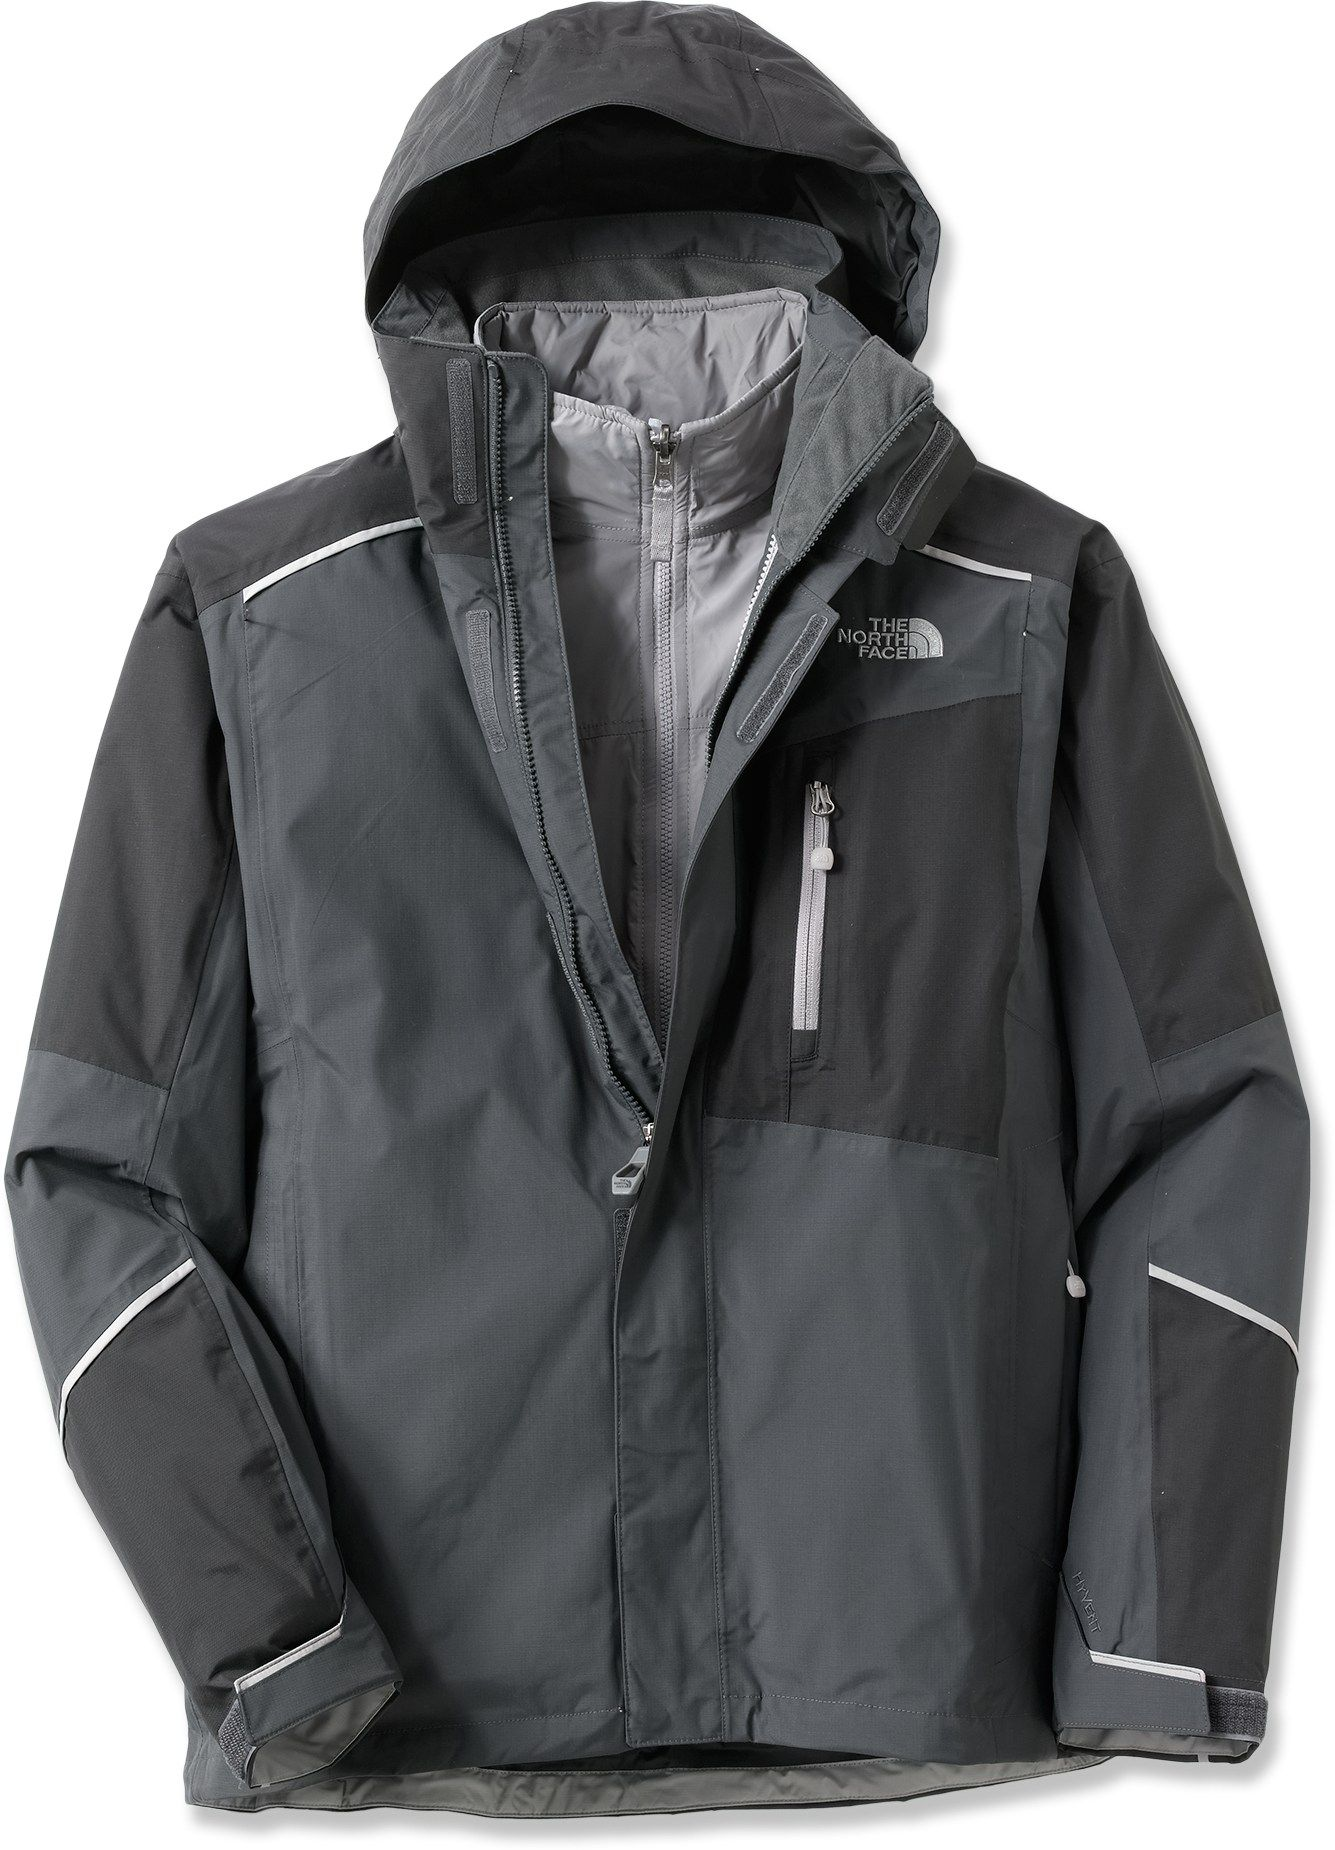 The North Face Beckett Triclimate 3 In 1 Insulated Jacket Men S Rei Co Op Lightweight Warm Jacket Mens Jackets North Face Jacket [ 1850 x 1335 Pixel ]